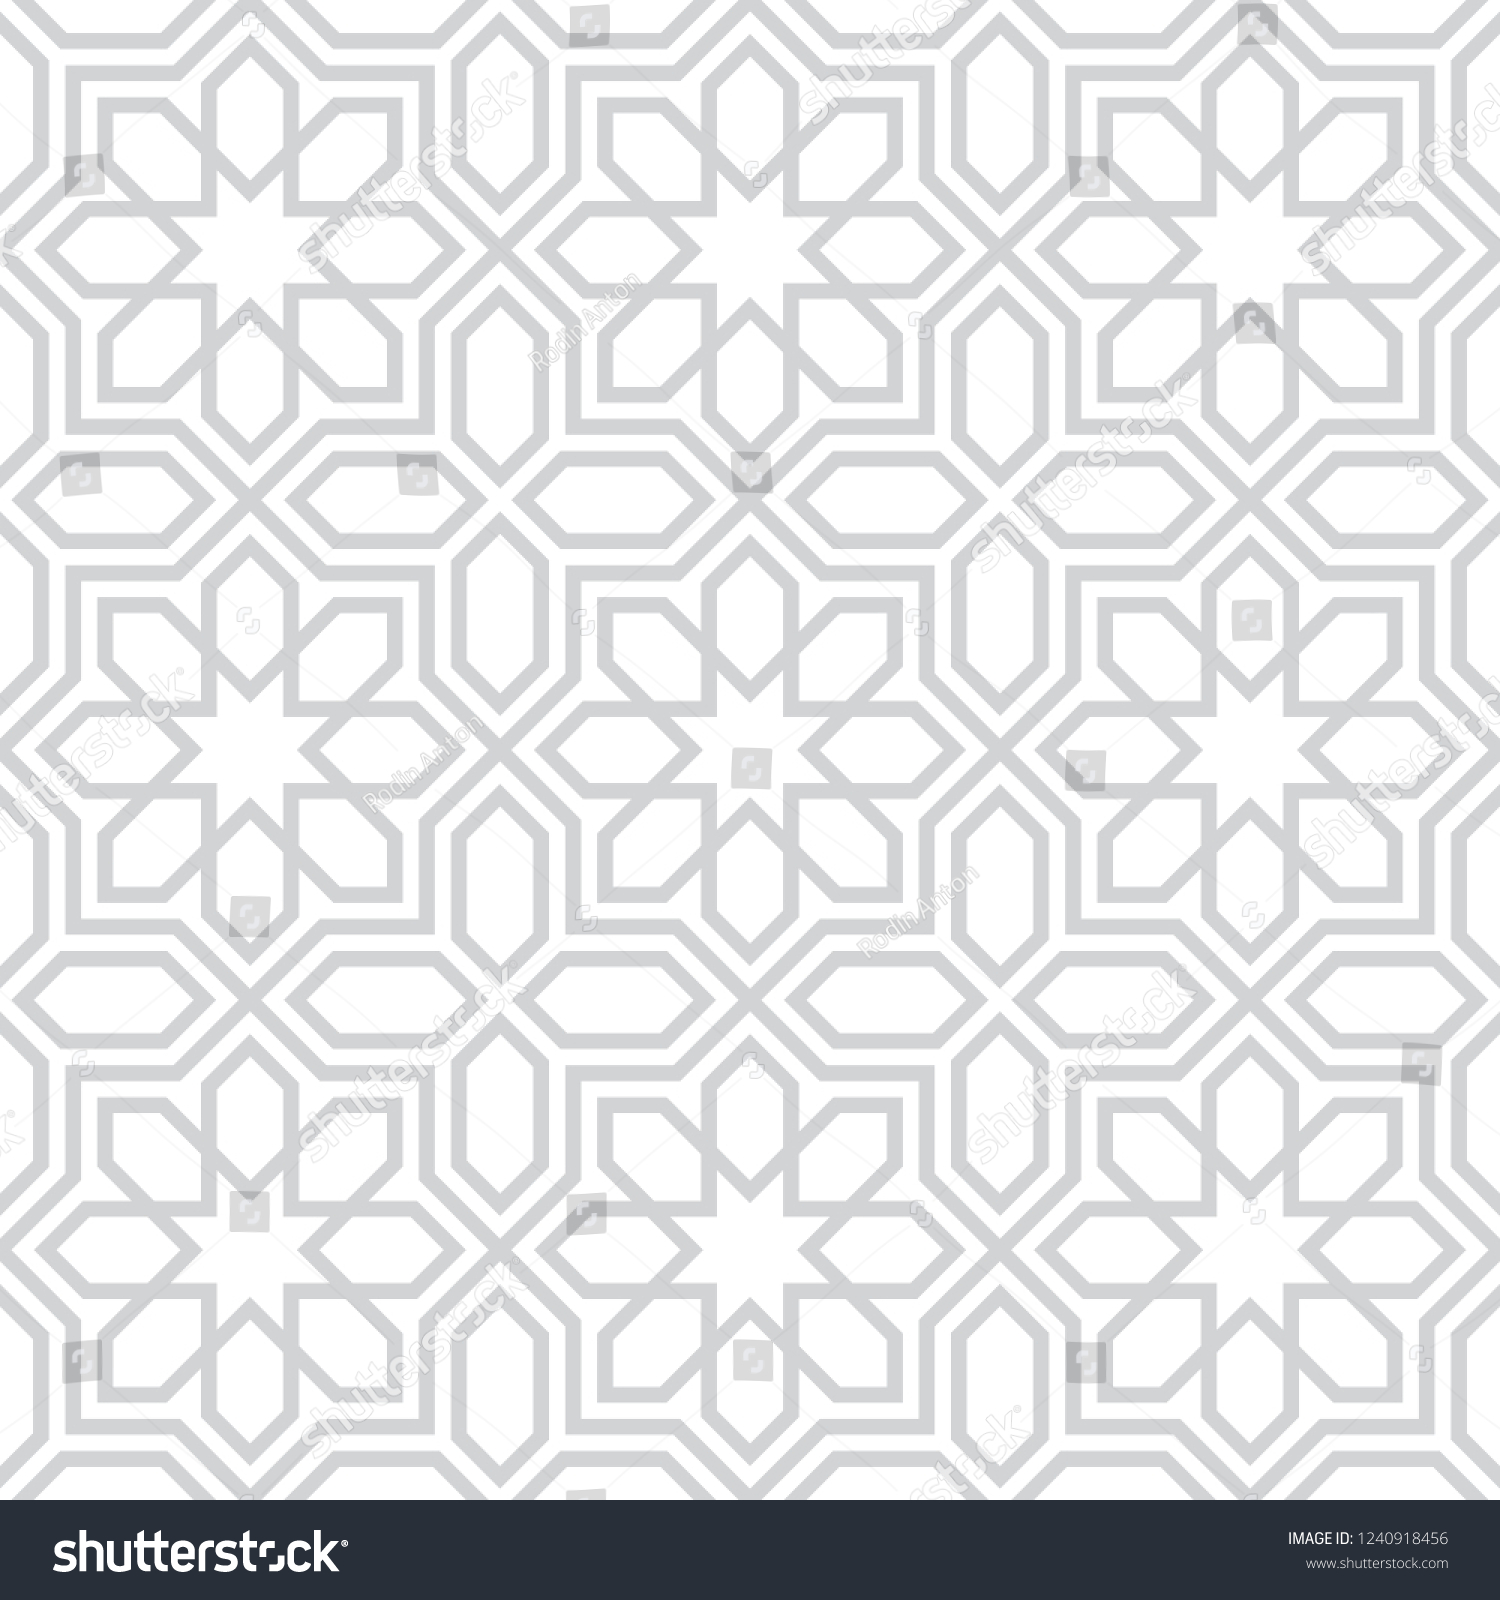 Png Grey Simple Background Islamic Patterns Www Galleryneed Com